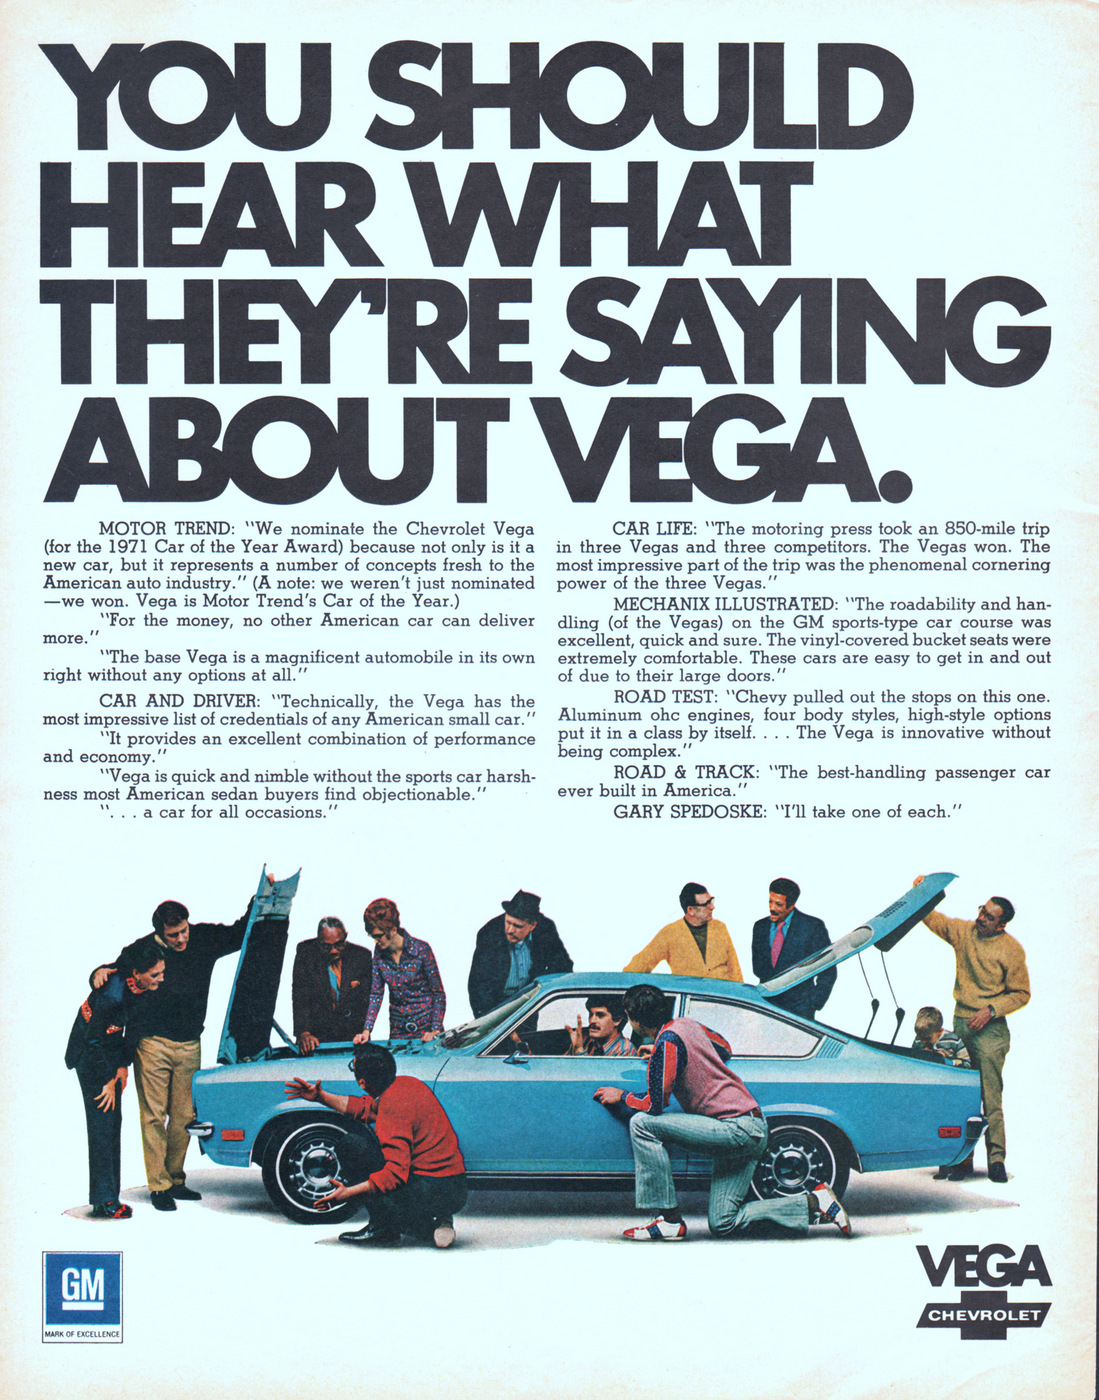 Blue Chevy Vega 1971 Ad. Automobiles. Stock Number: 21269.